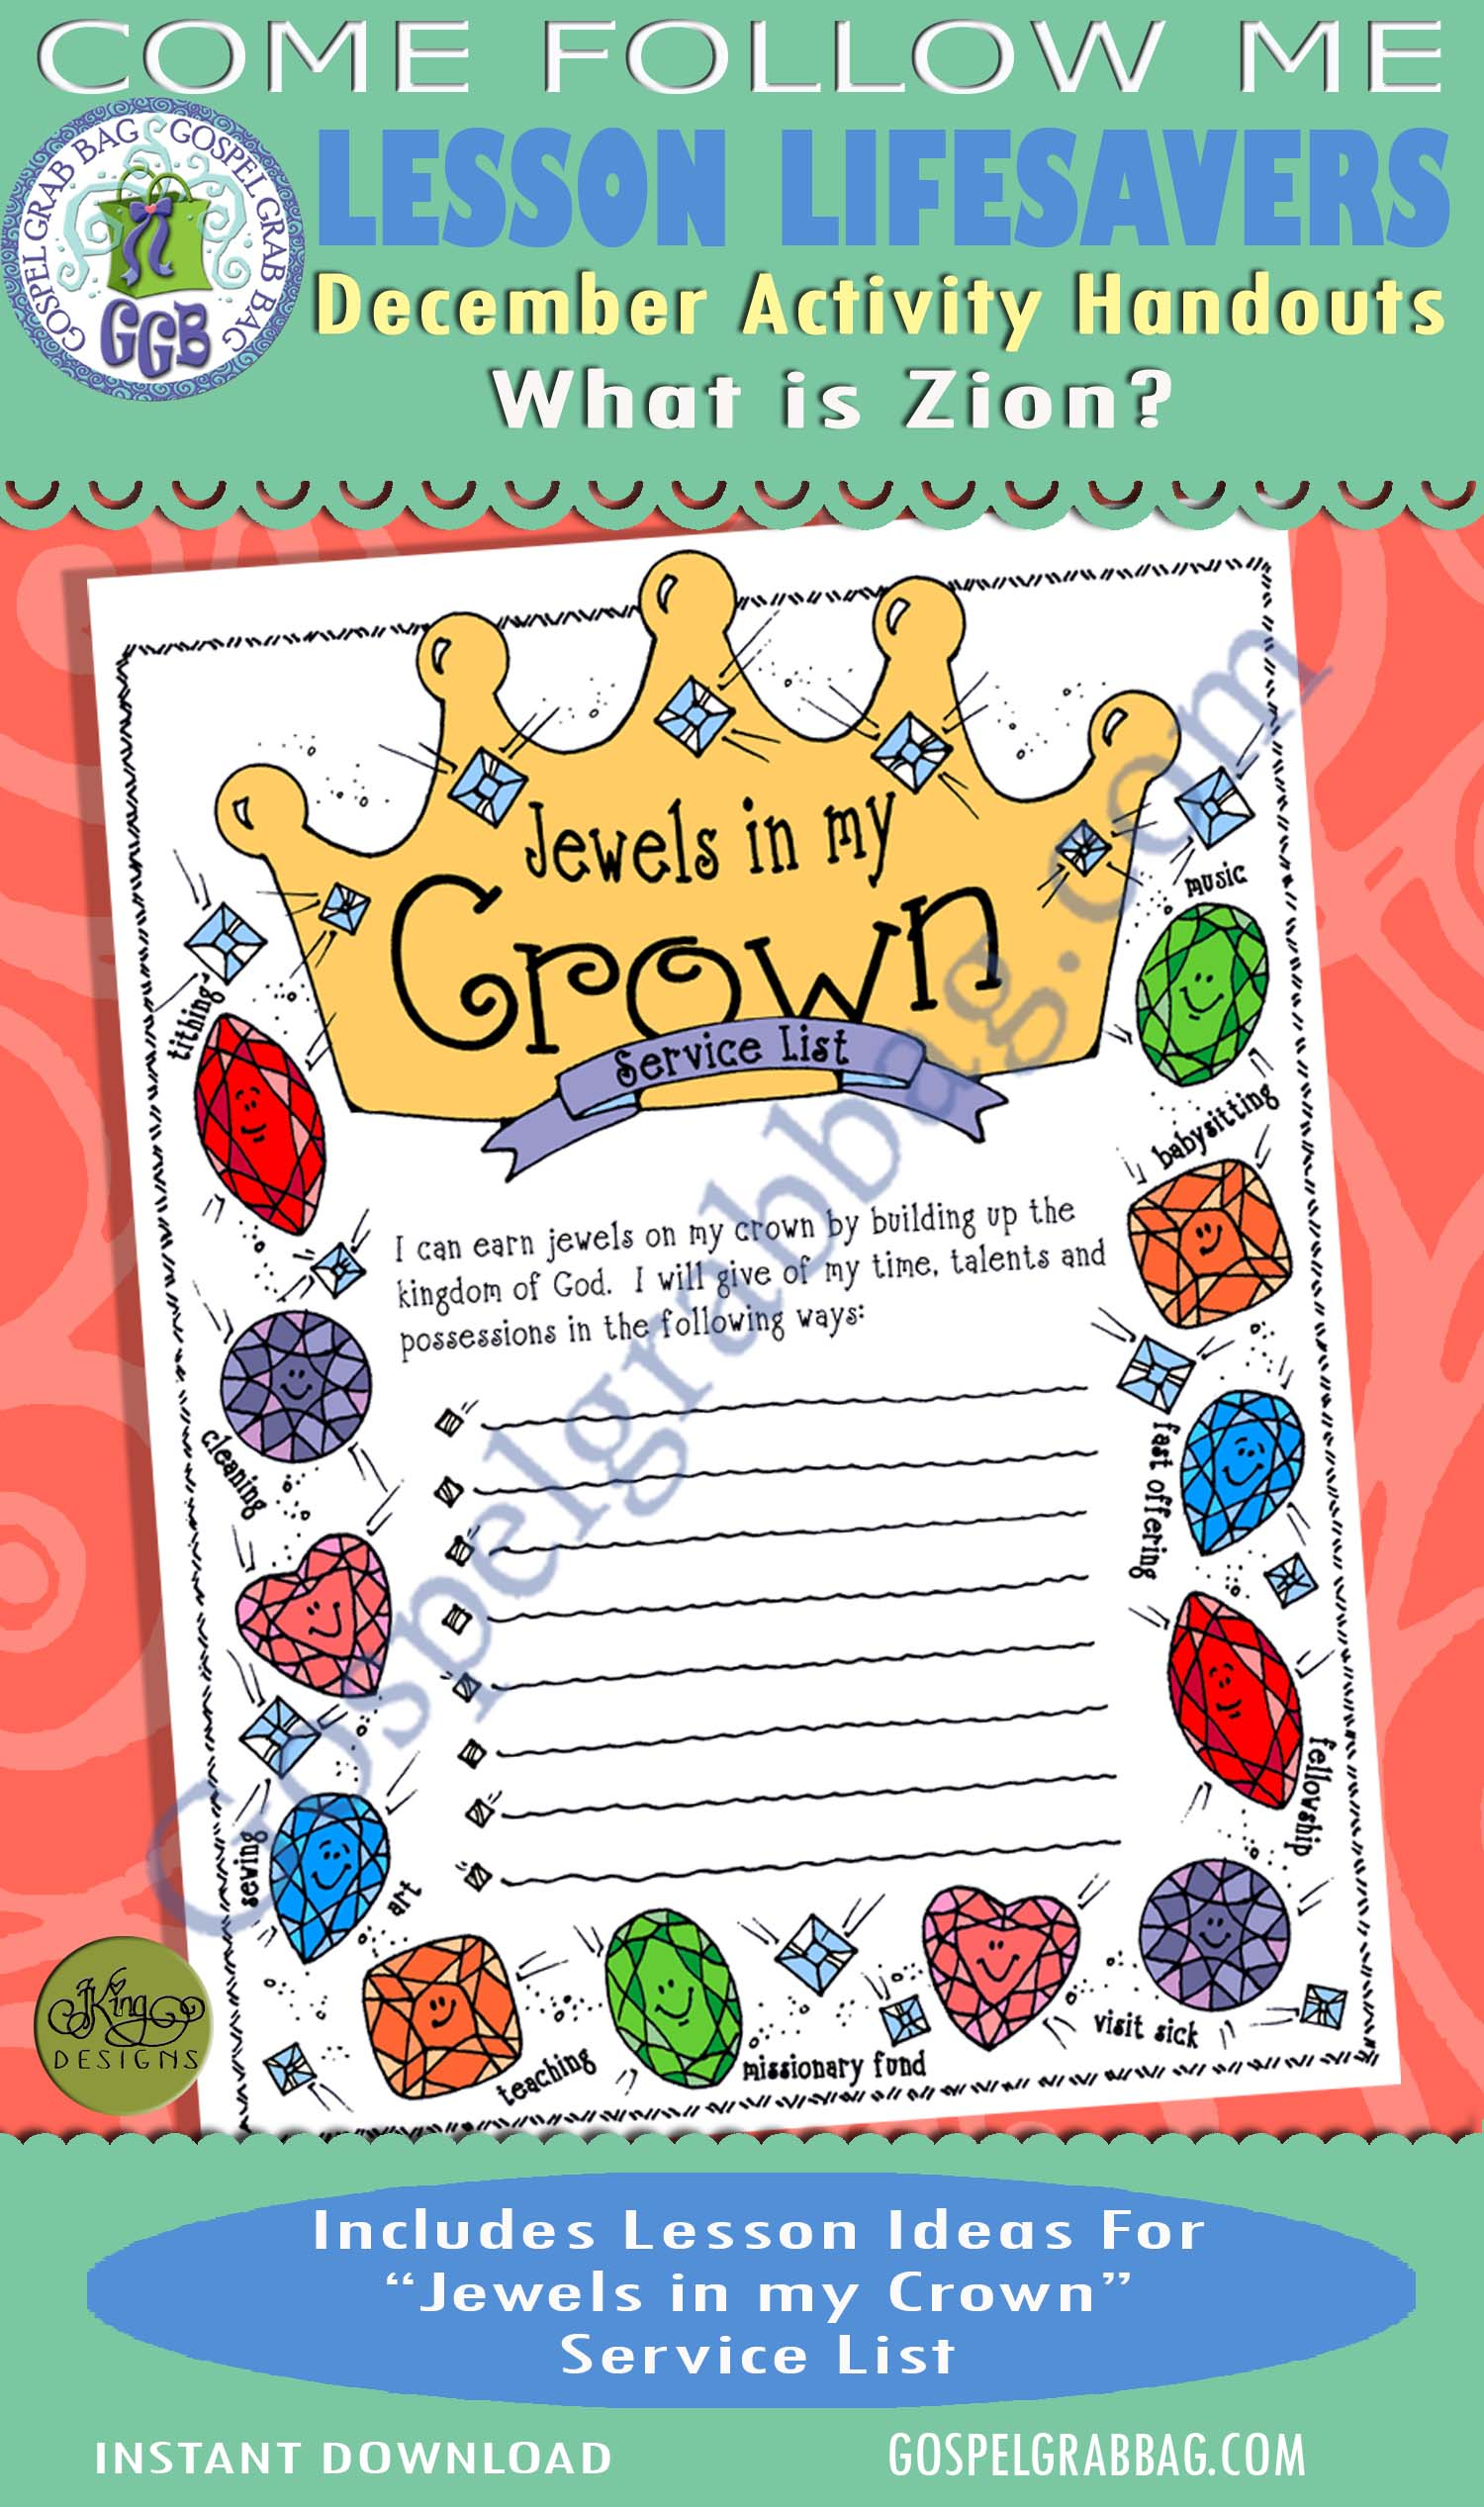 "$1.75 December Lesson 6 - Come Follow Me ""What is Zion?"" ACTIVITY: Jewels in My Crown service list"